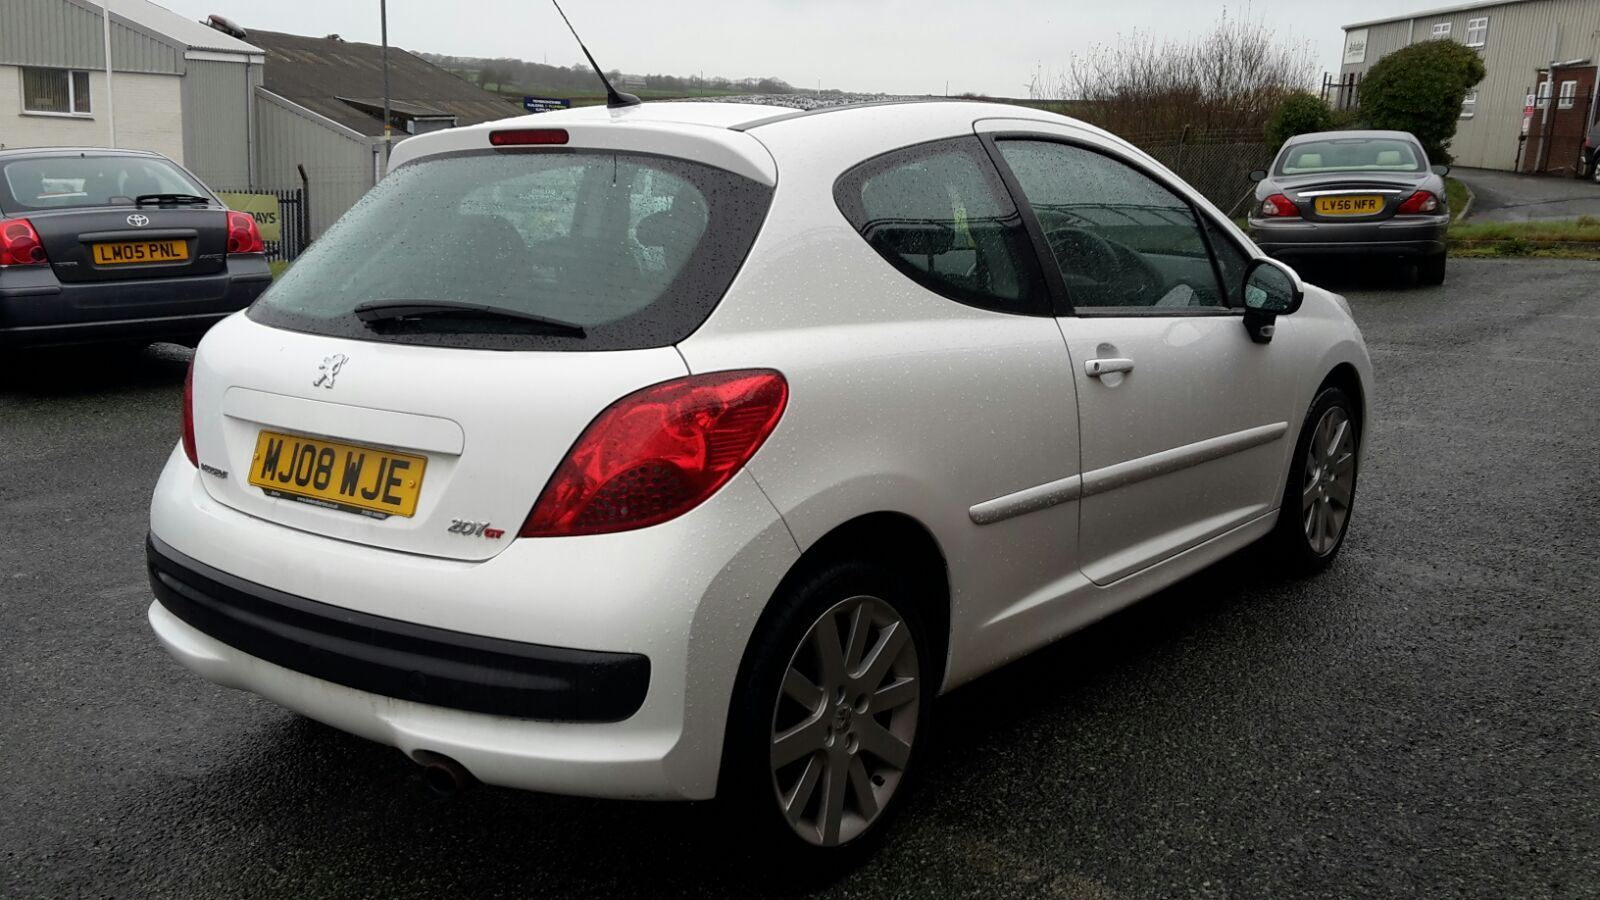 ... Picture of Peugeot 207 gt ...